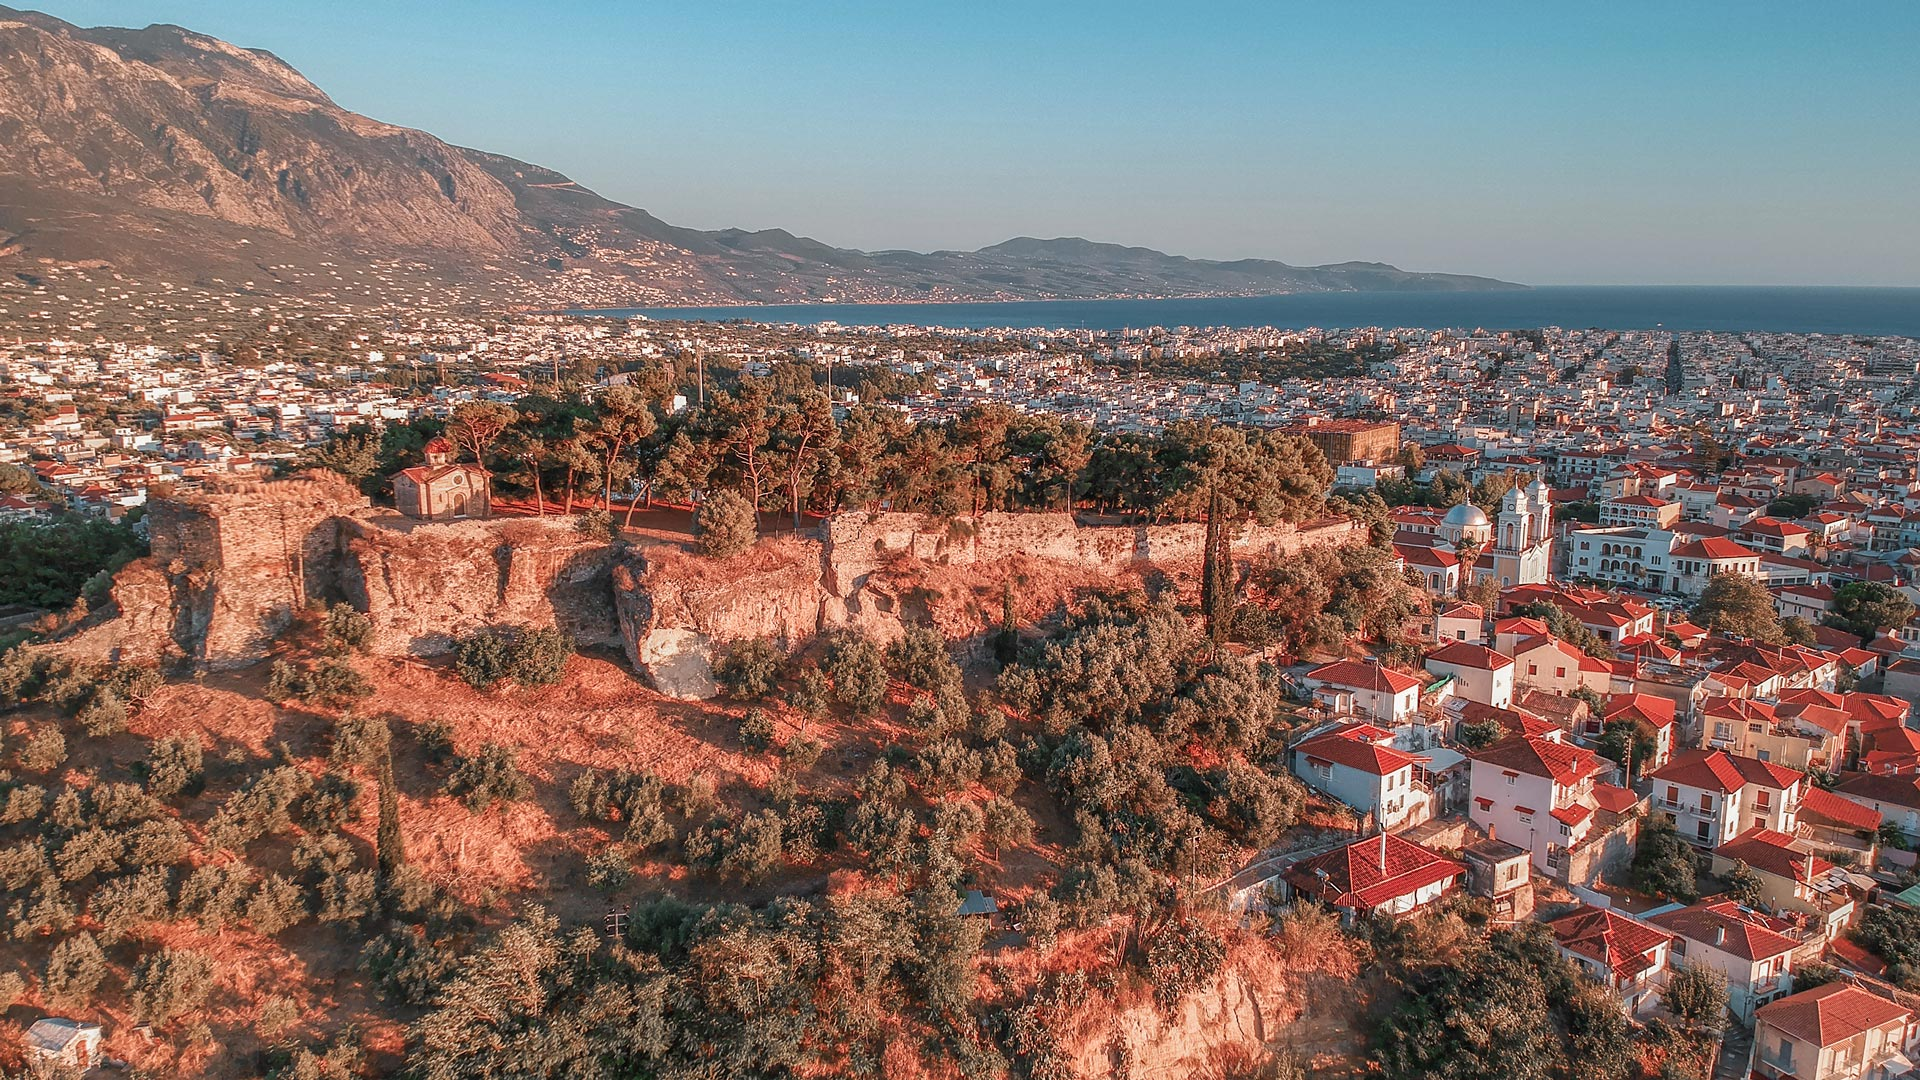 Aerial view of the wonderful old town of Kalamata City and the historical Castle at Sunset